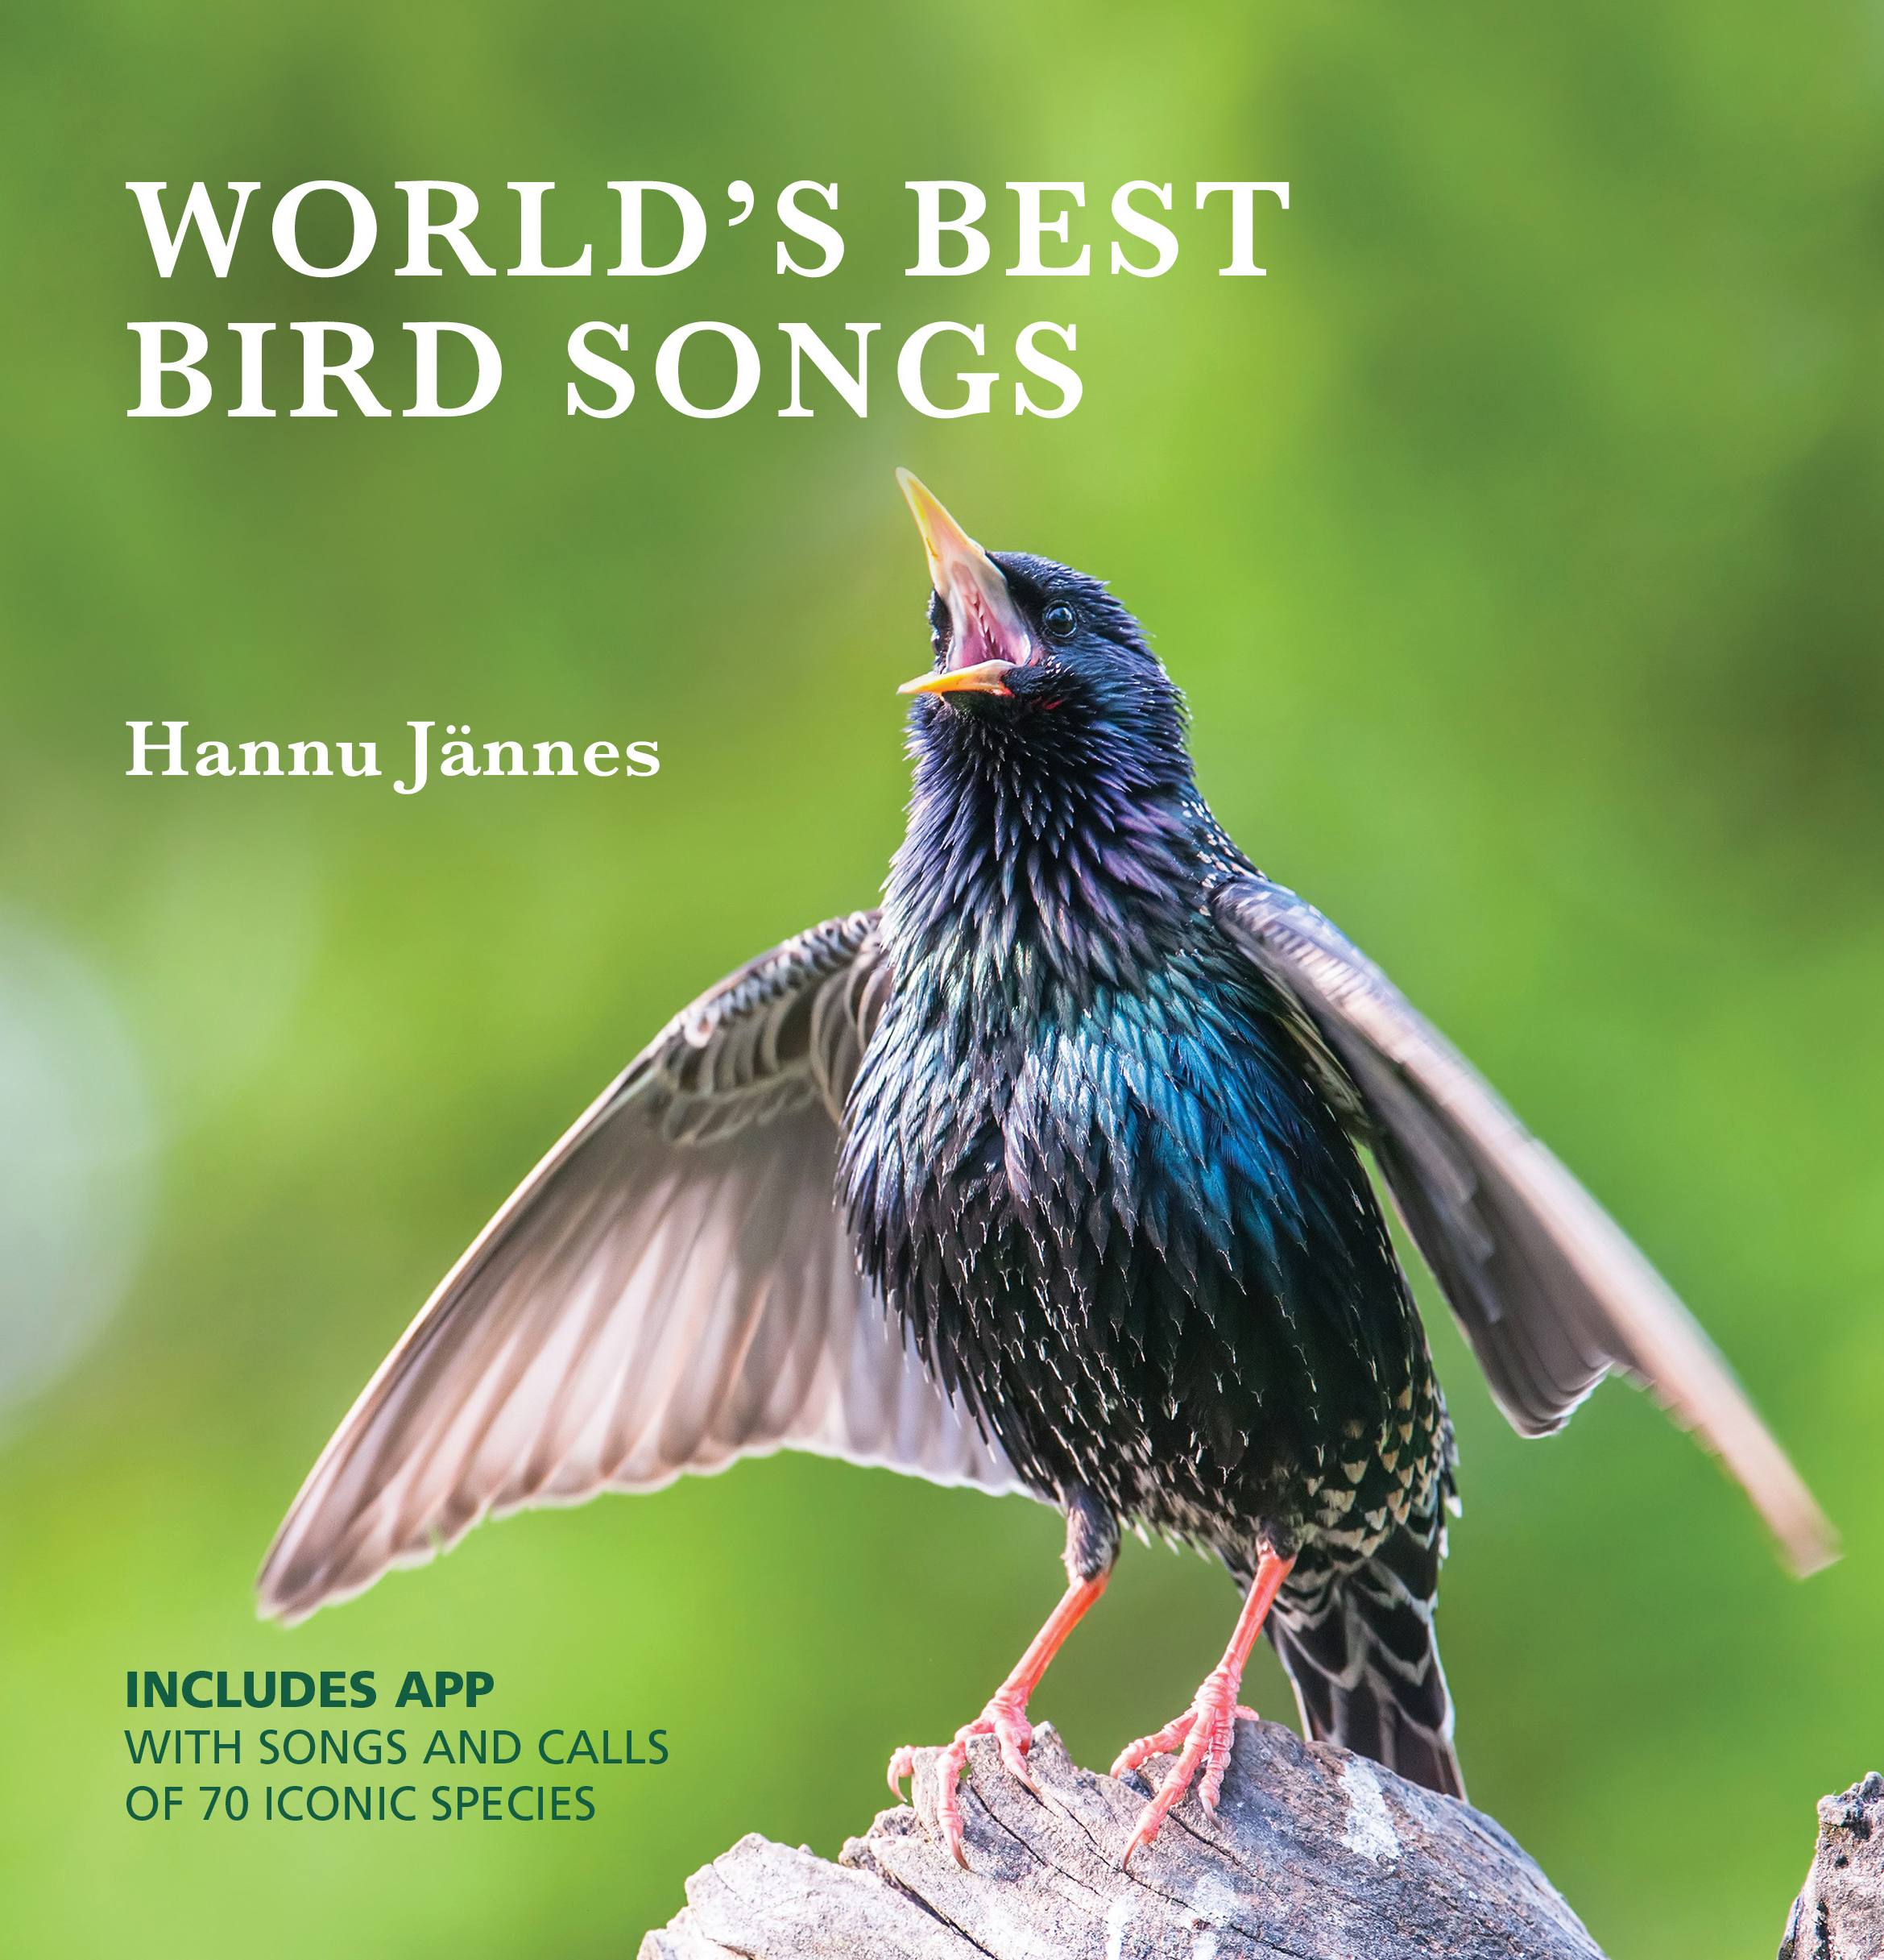 World's Best Bird Songs